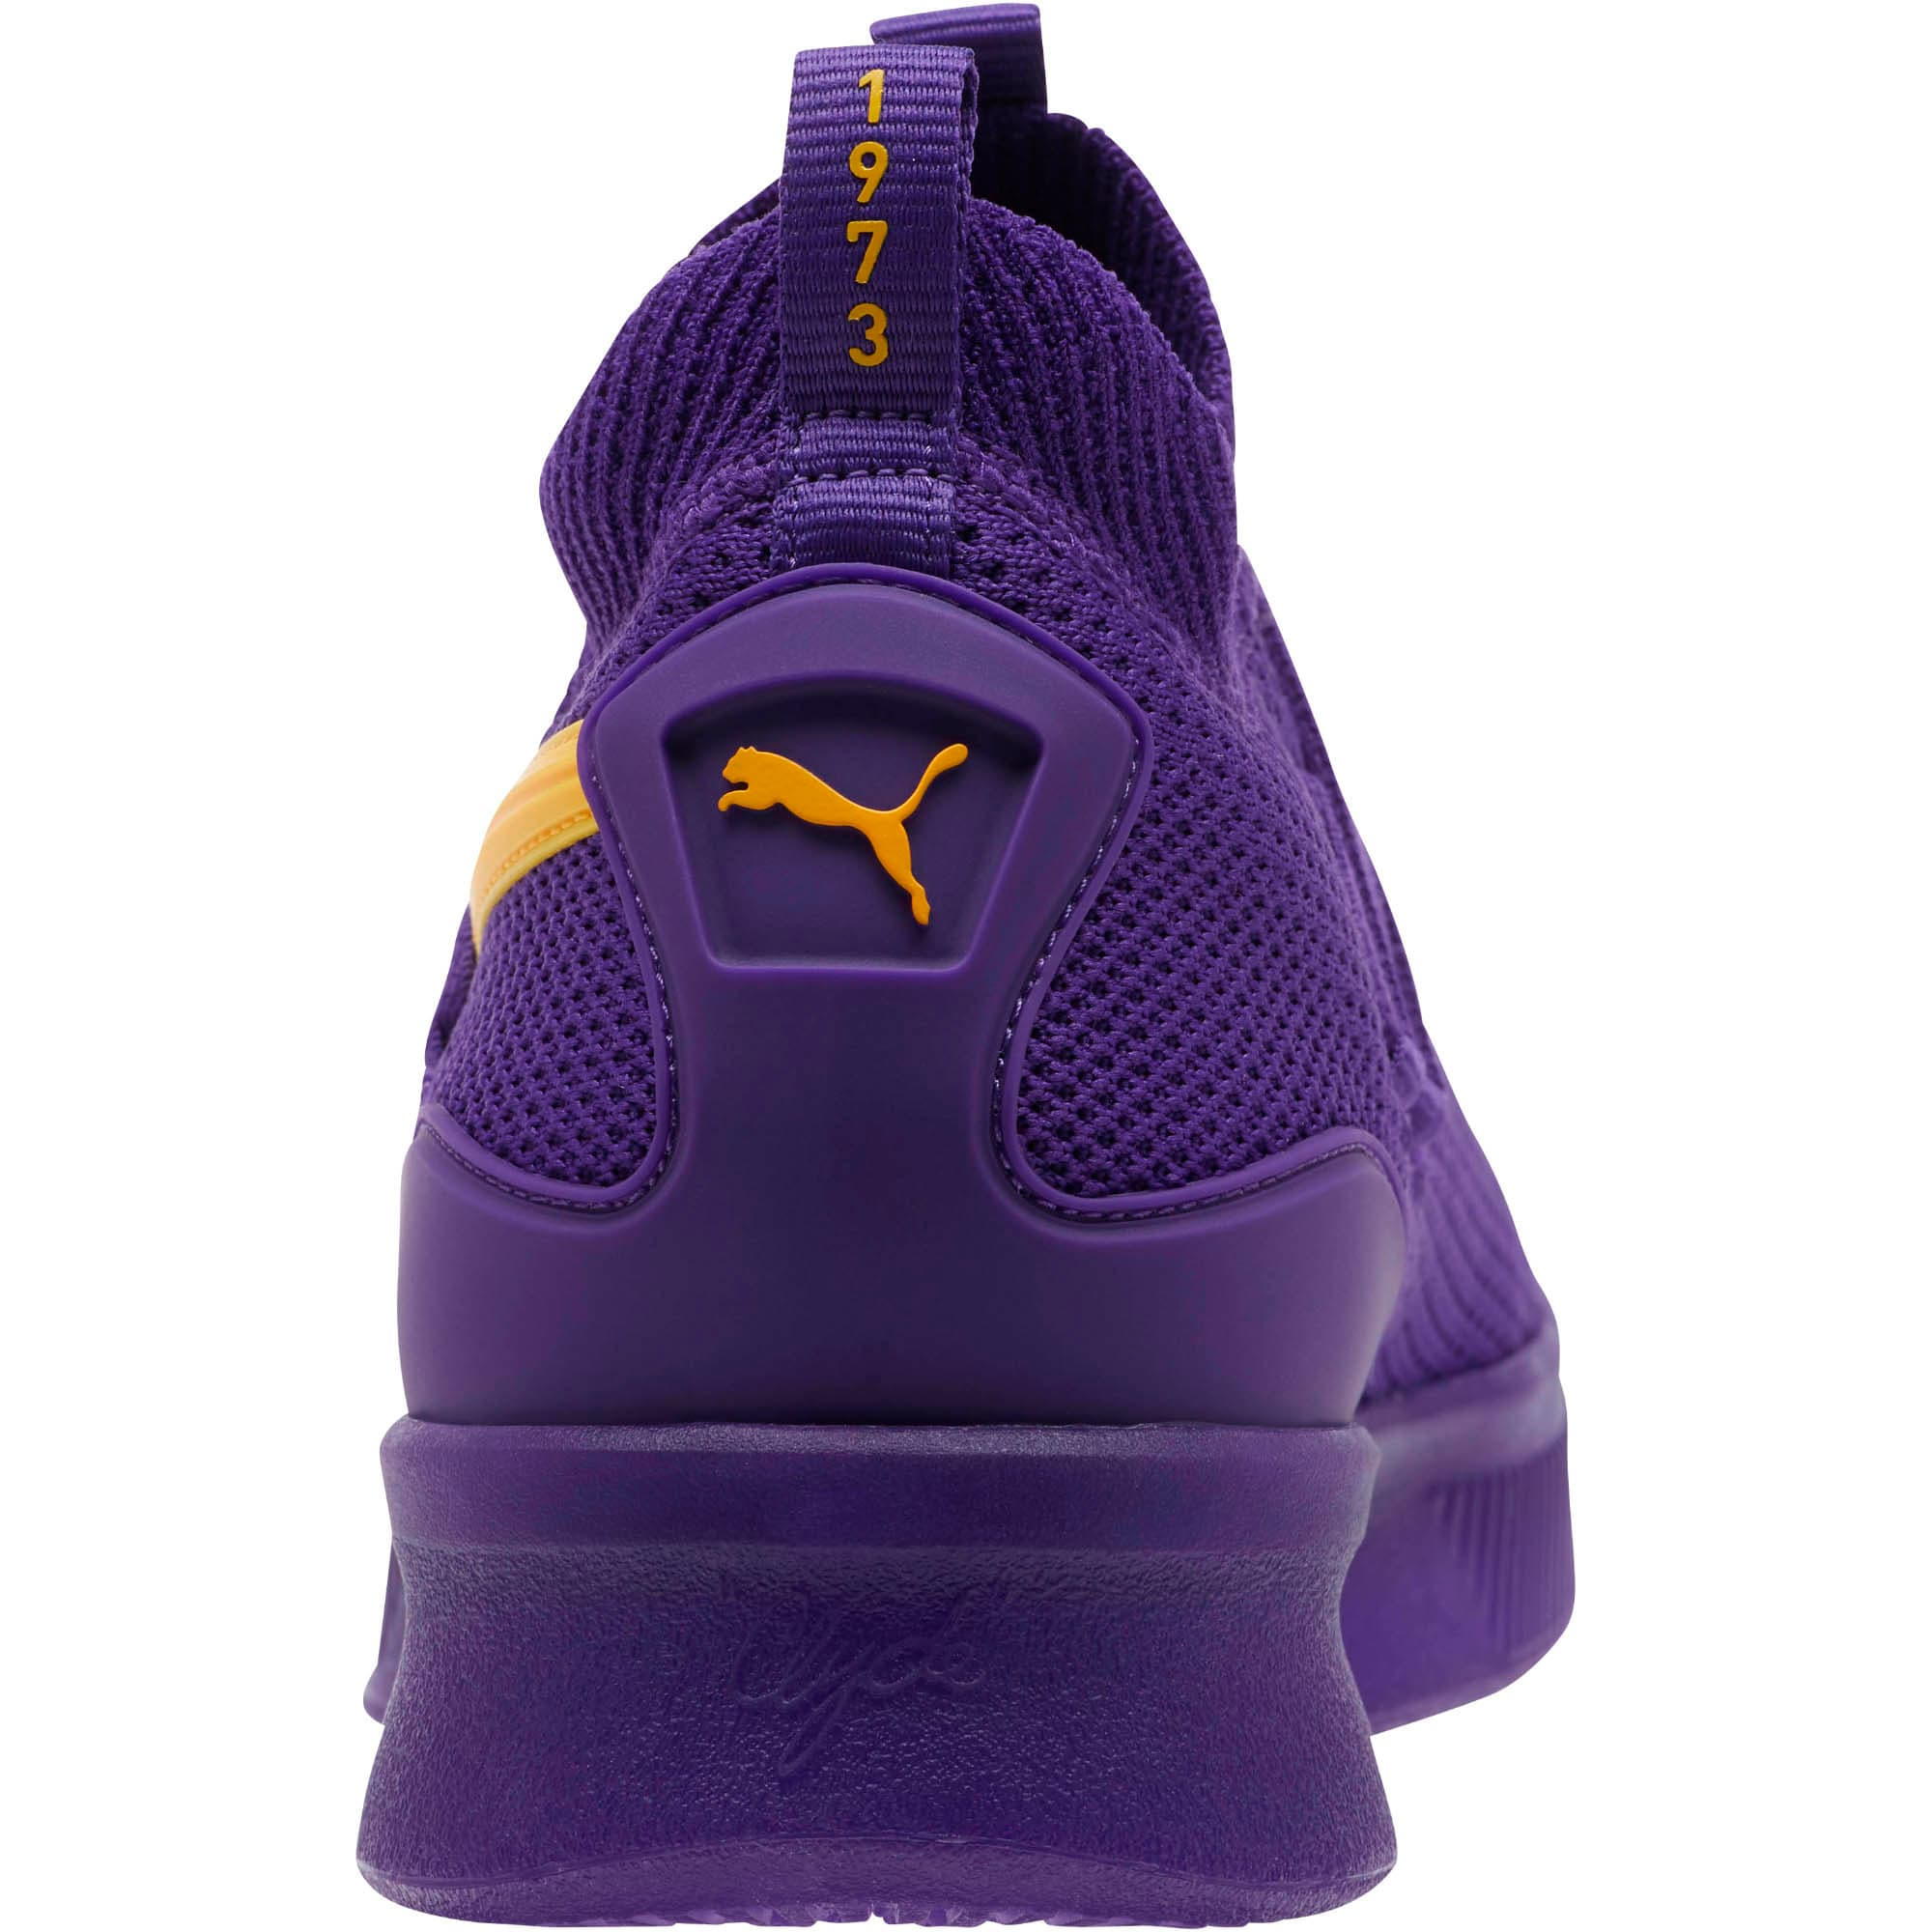 Thumbnail 3 of Clyde Court Core Basketball Shoes, Prism Violet, medium